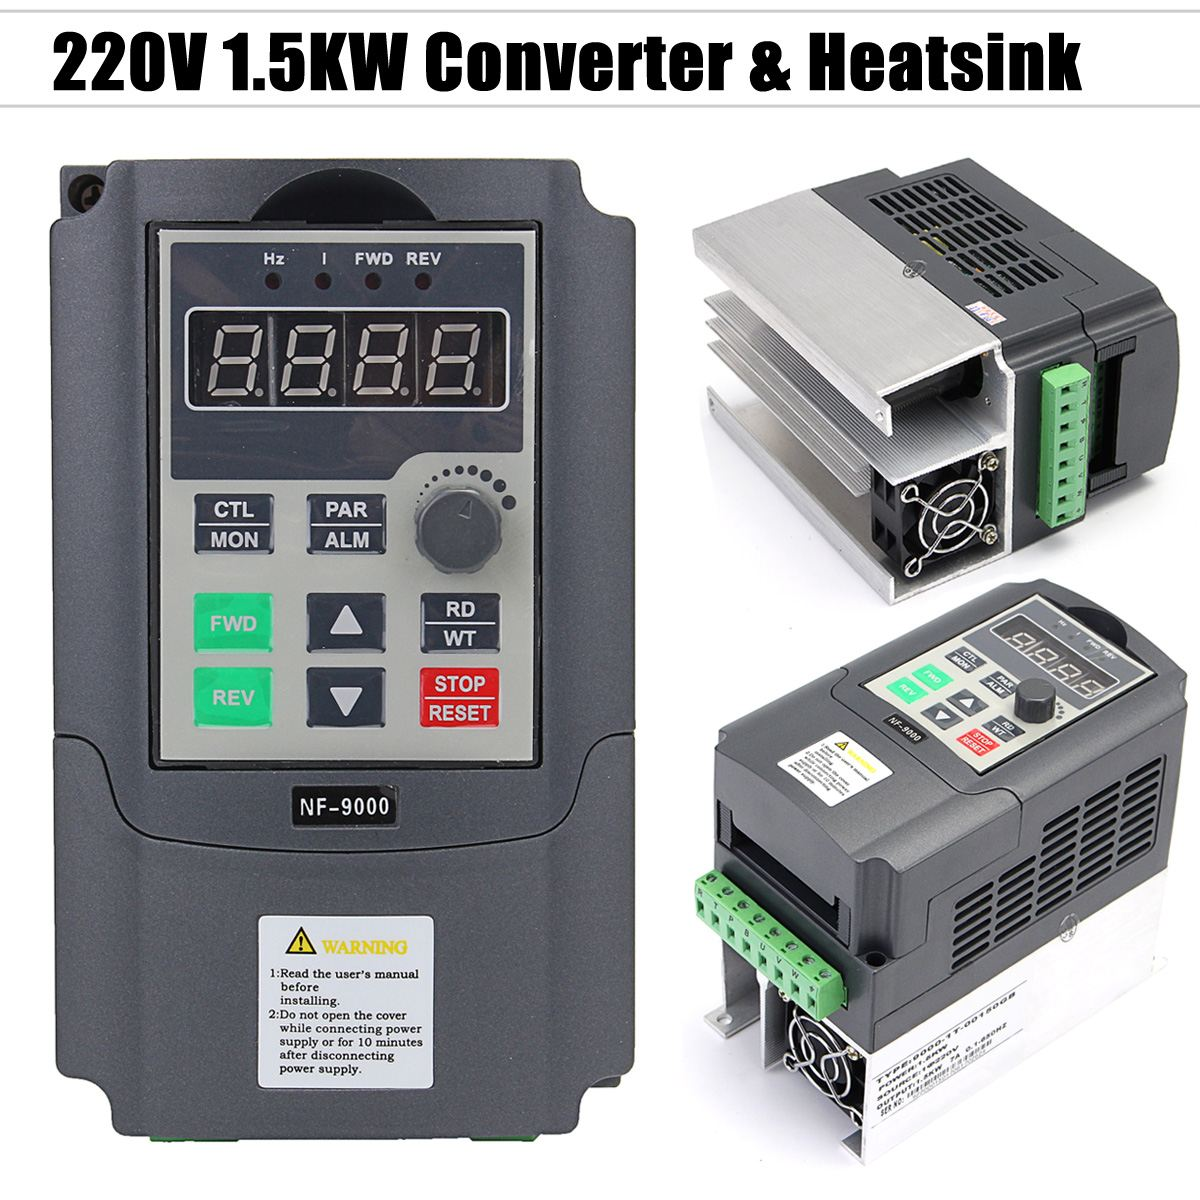 CNC Spindle Motor Speed Control 220V 1.5KW Single Phase input to 220V 3 Phase Output Frequency Converter VFD VSD vector control frequency converter 220v single phase to 220v three phase 220v 0 75kw